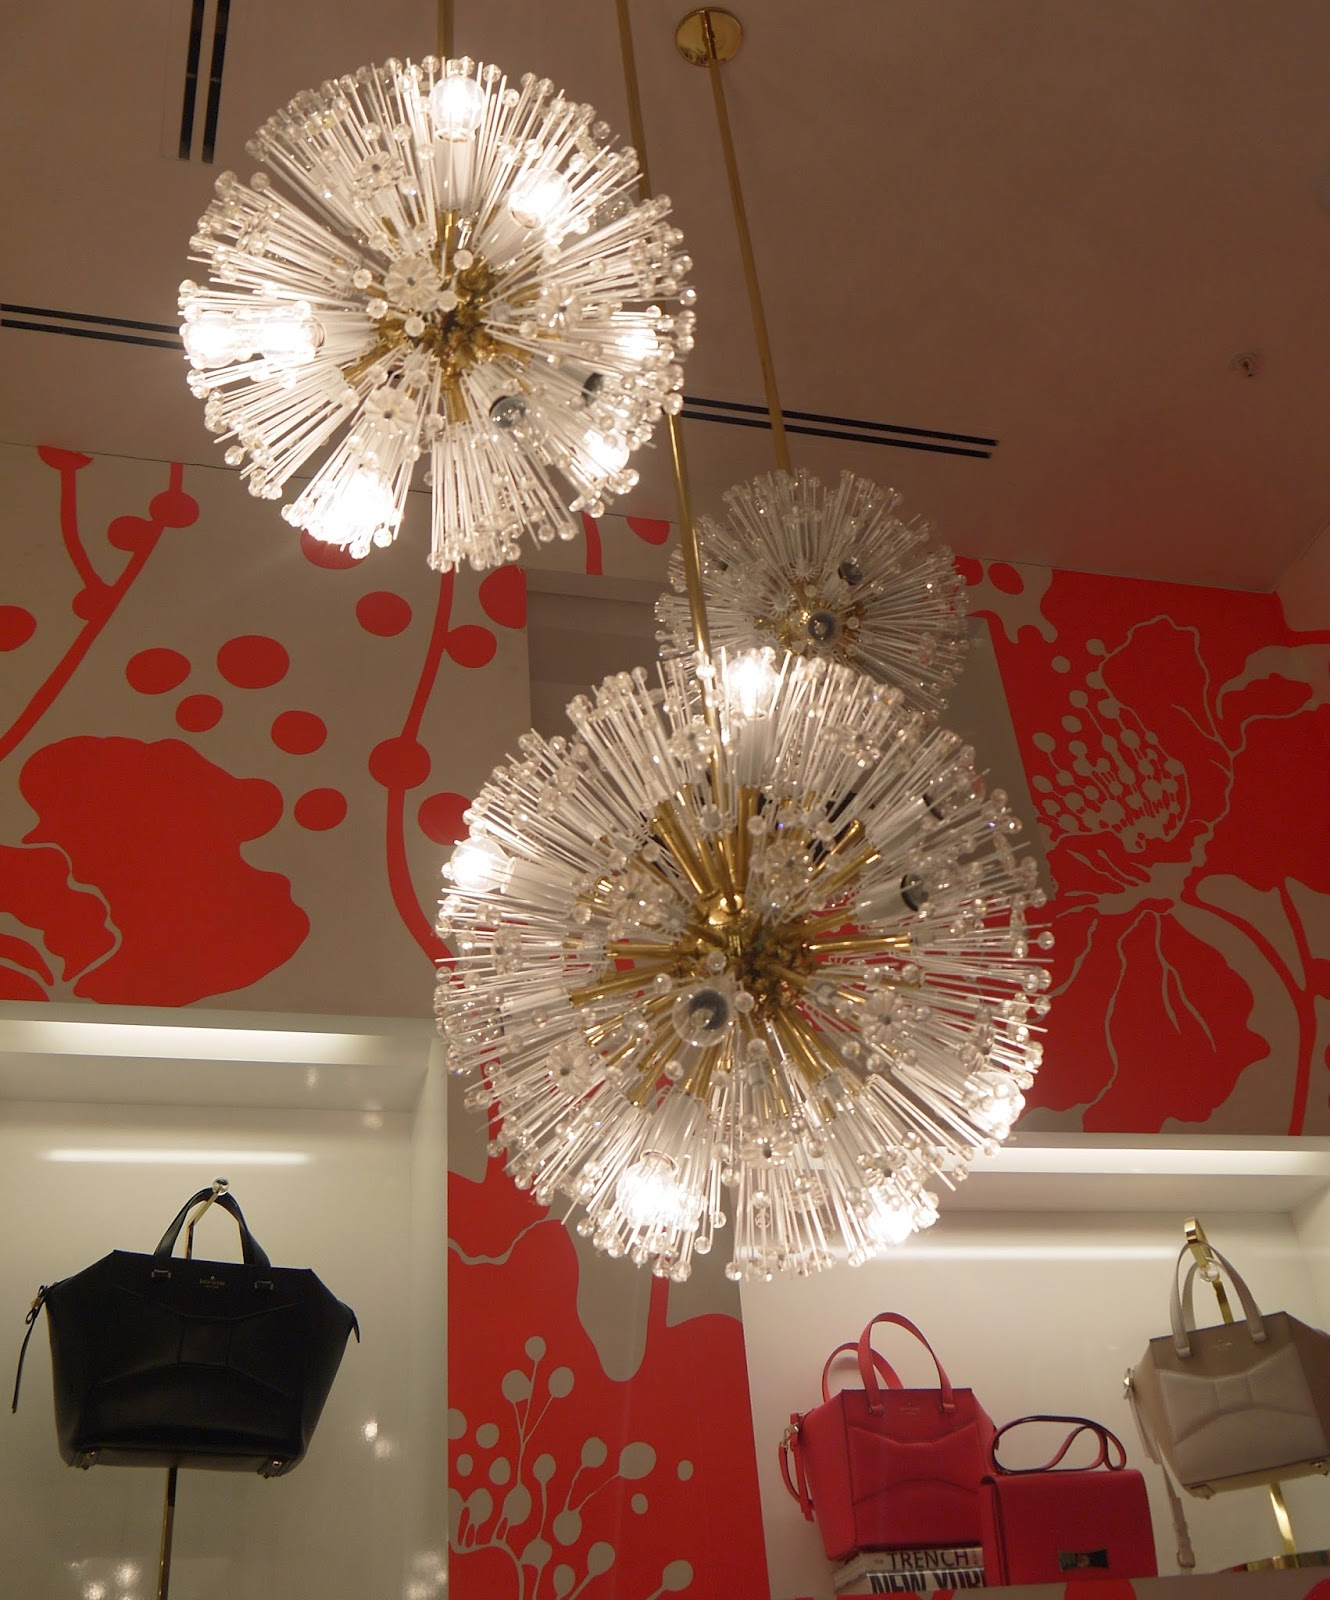 The Beautiful chandeliers at Kate Spade Westfield Store